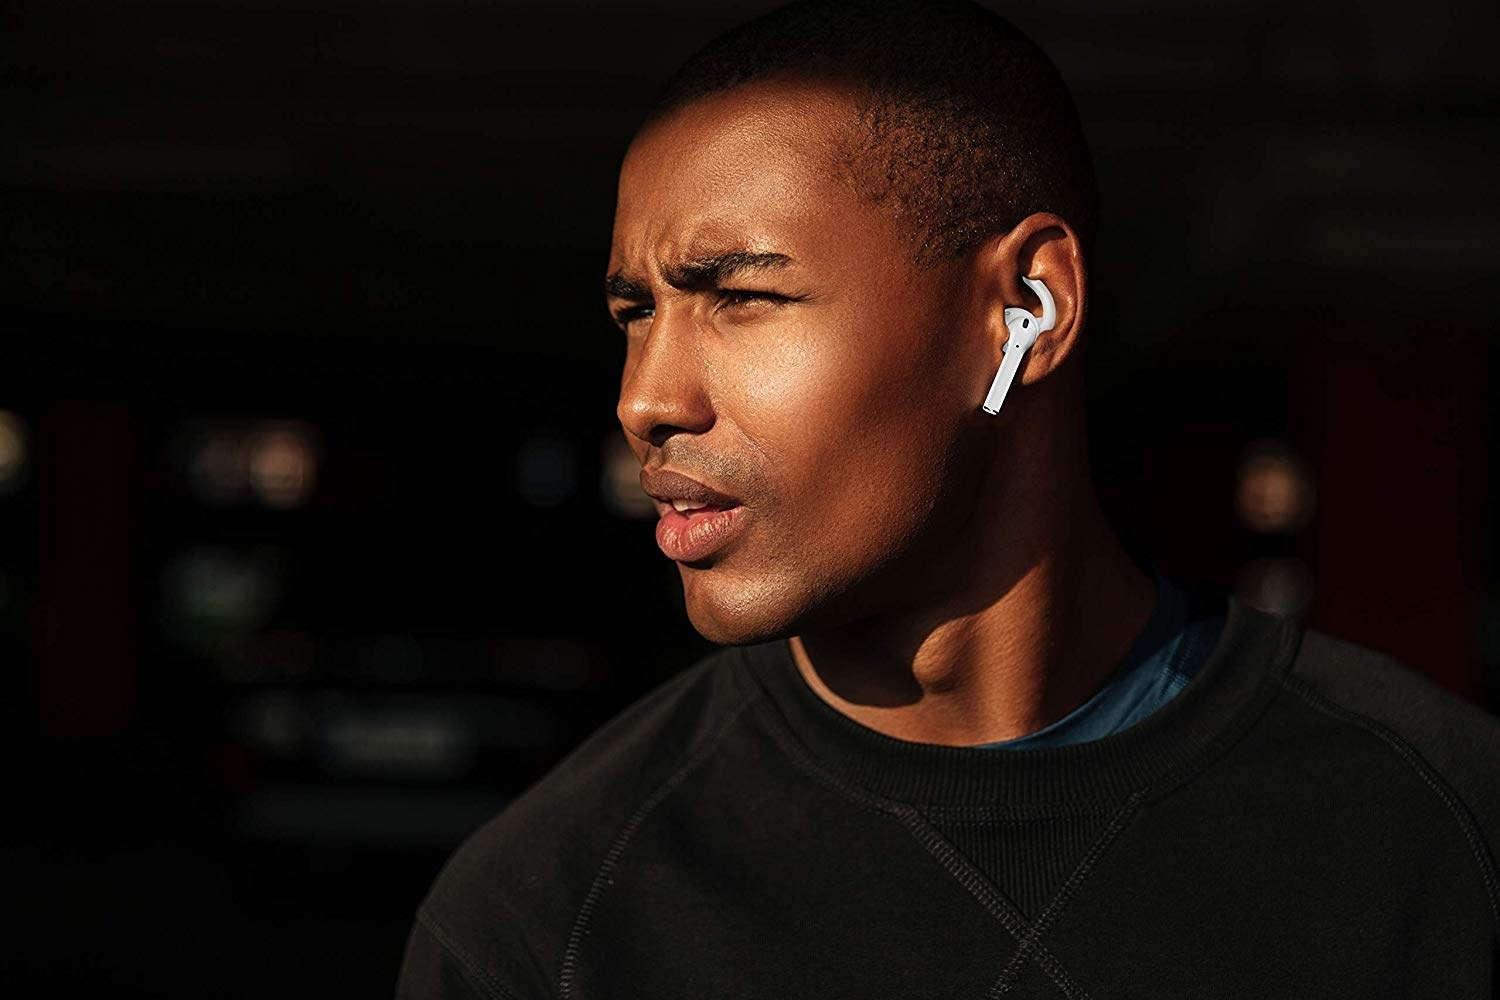 Model with the grips holding a pair of wireless earbuds in their ears